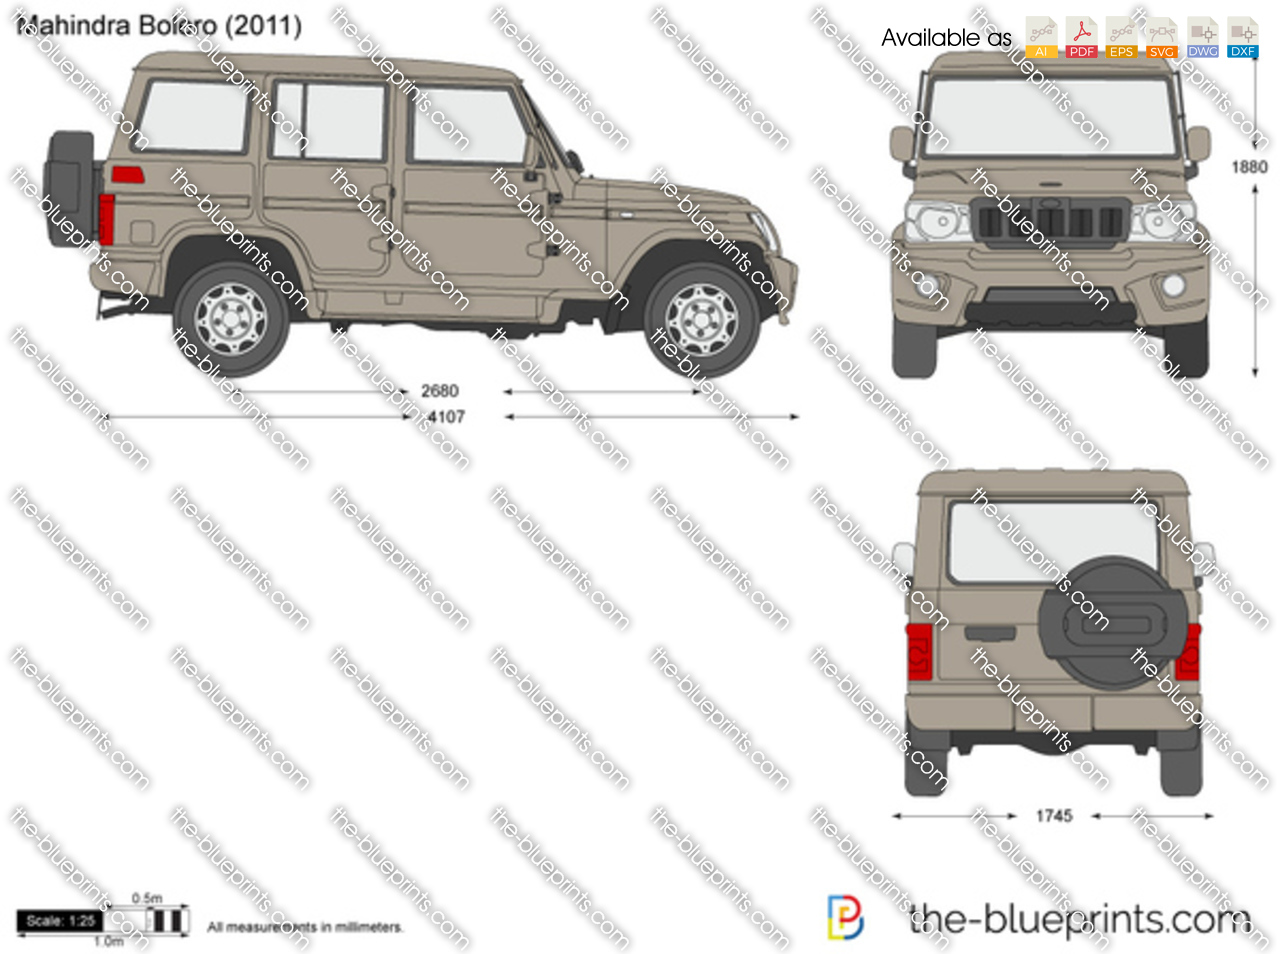 Mahindra Bolero Vector Drawing